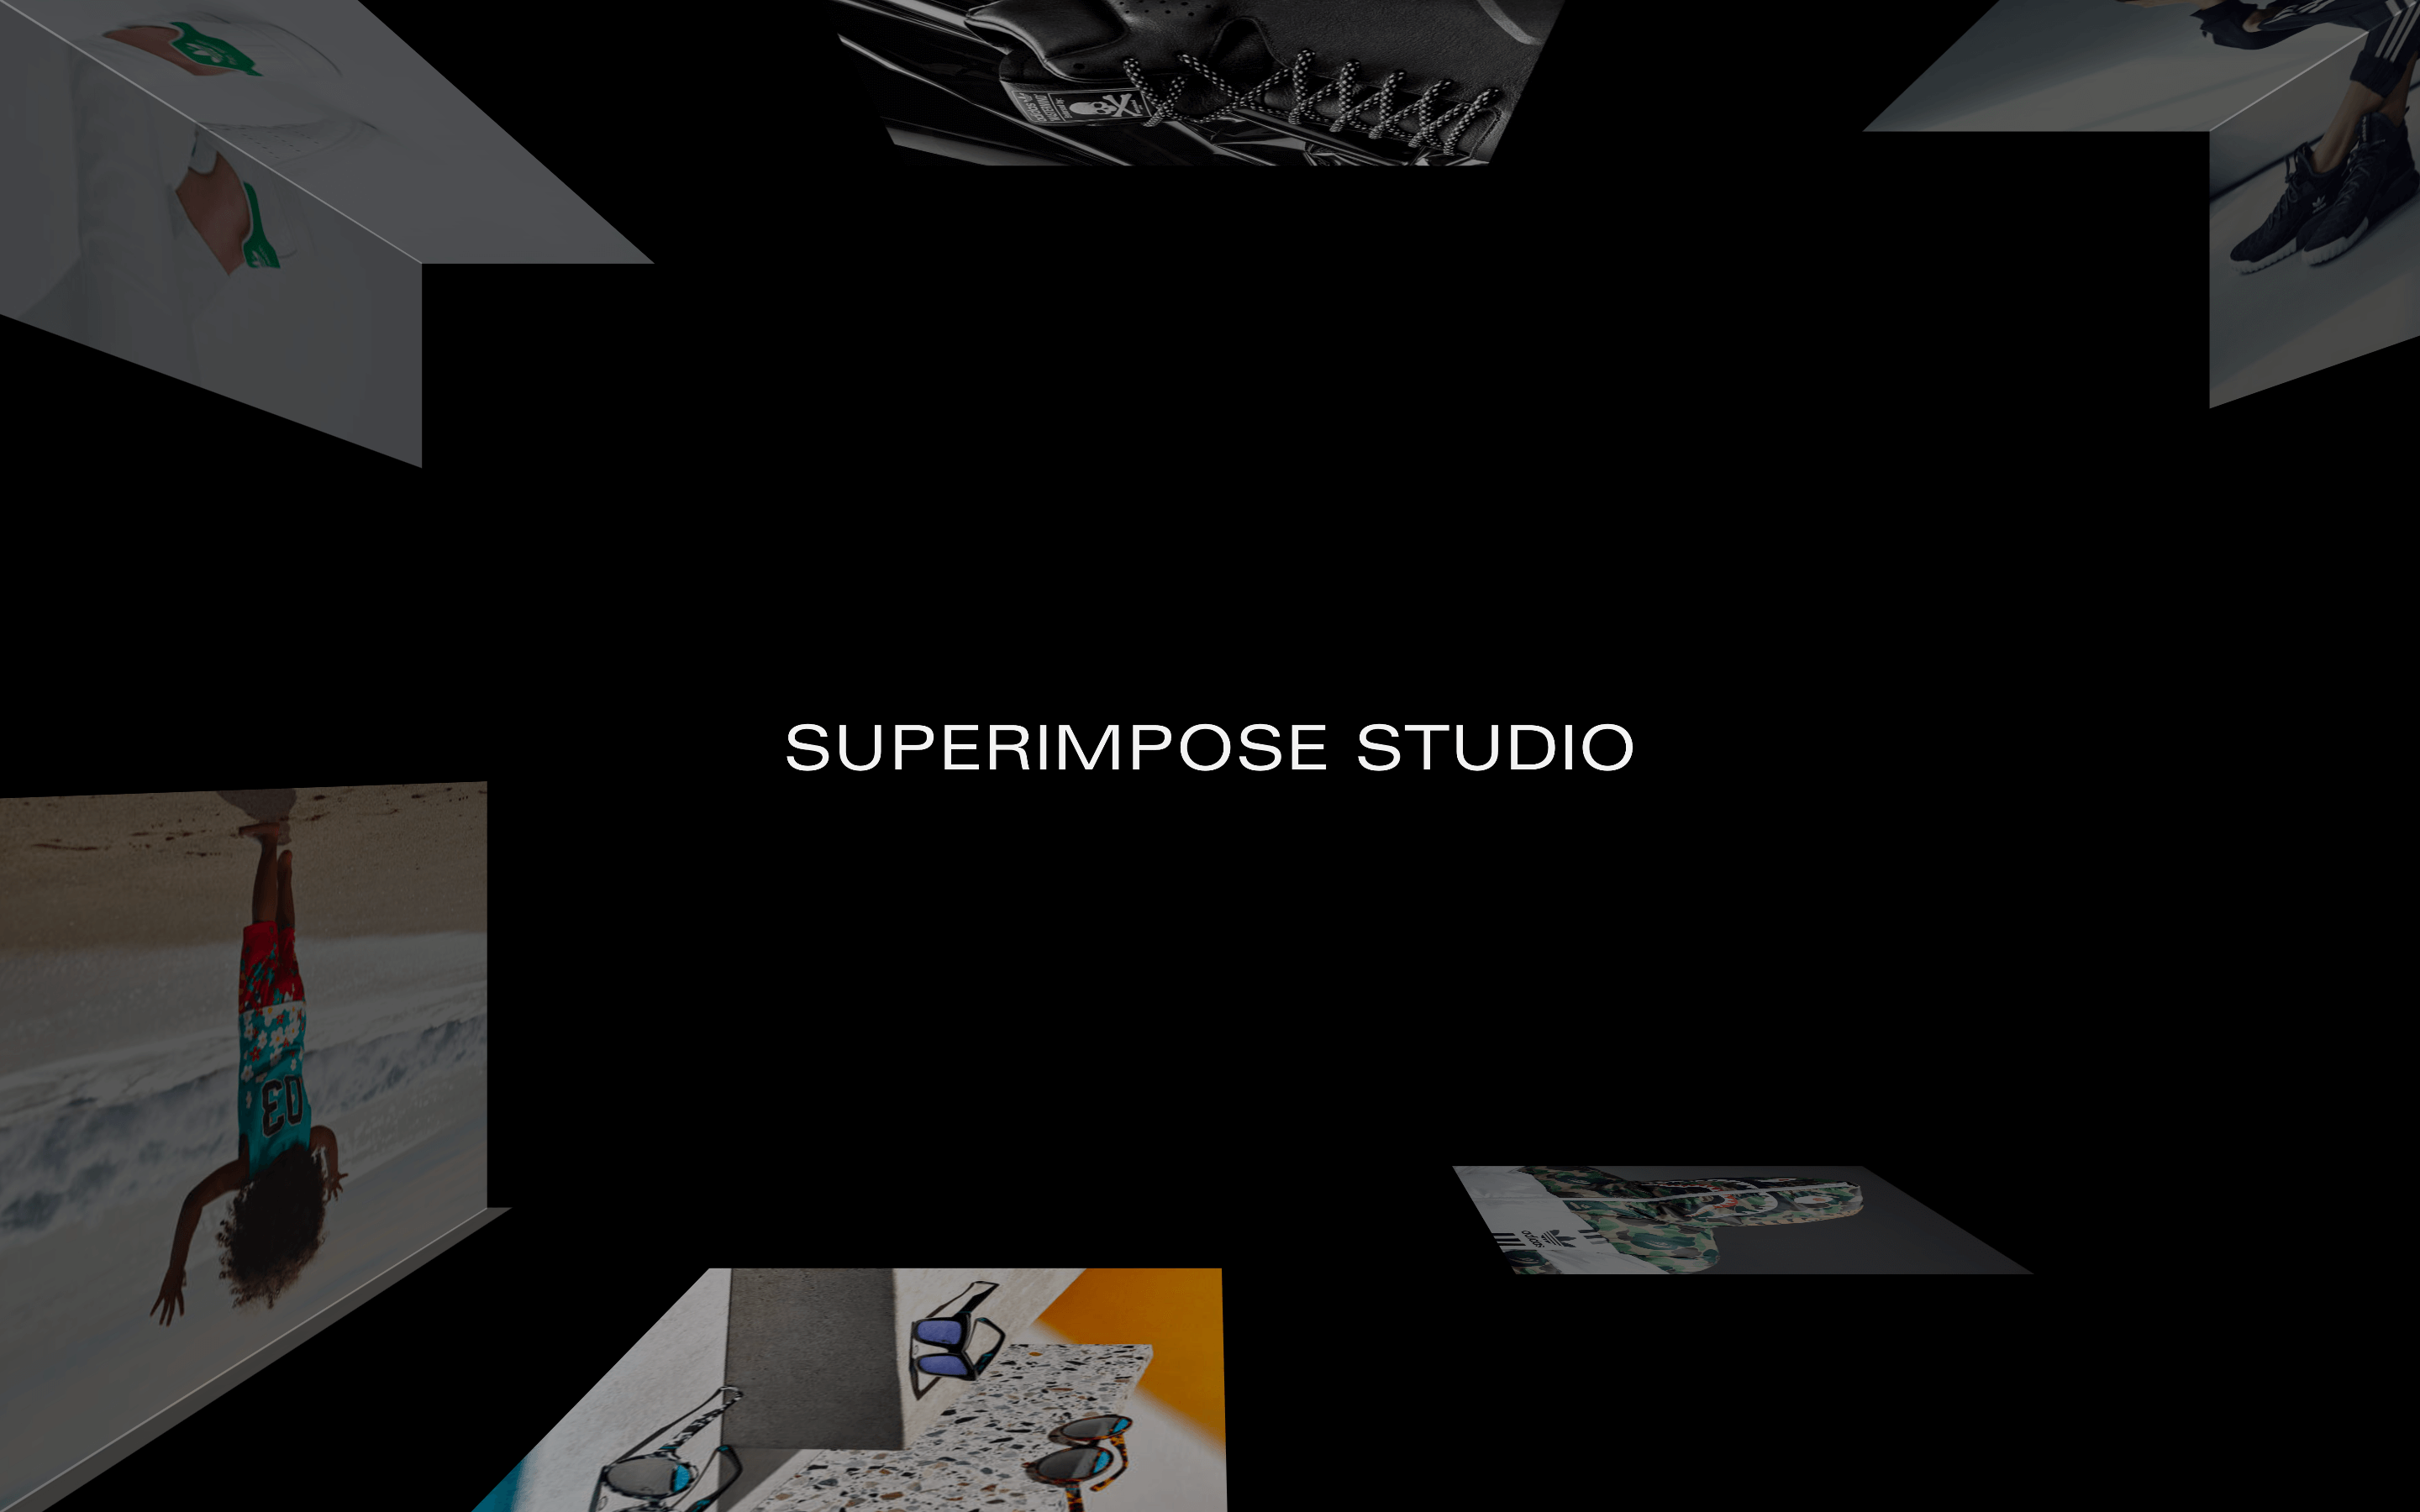 Superimpose Studio